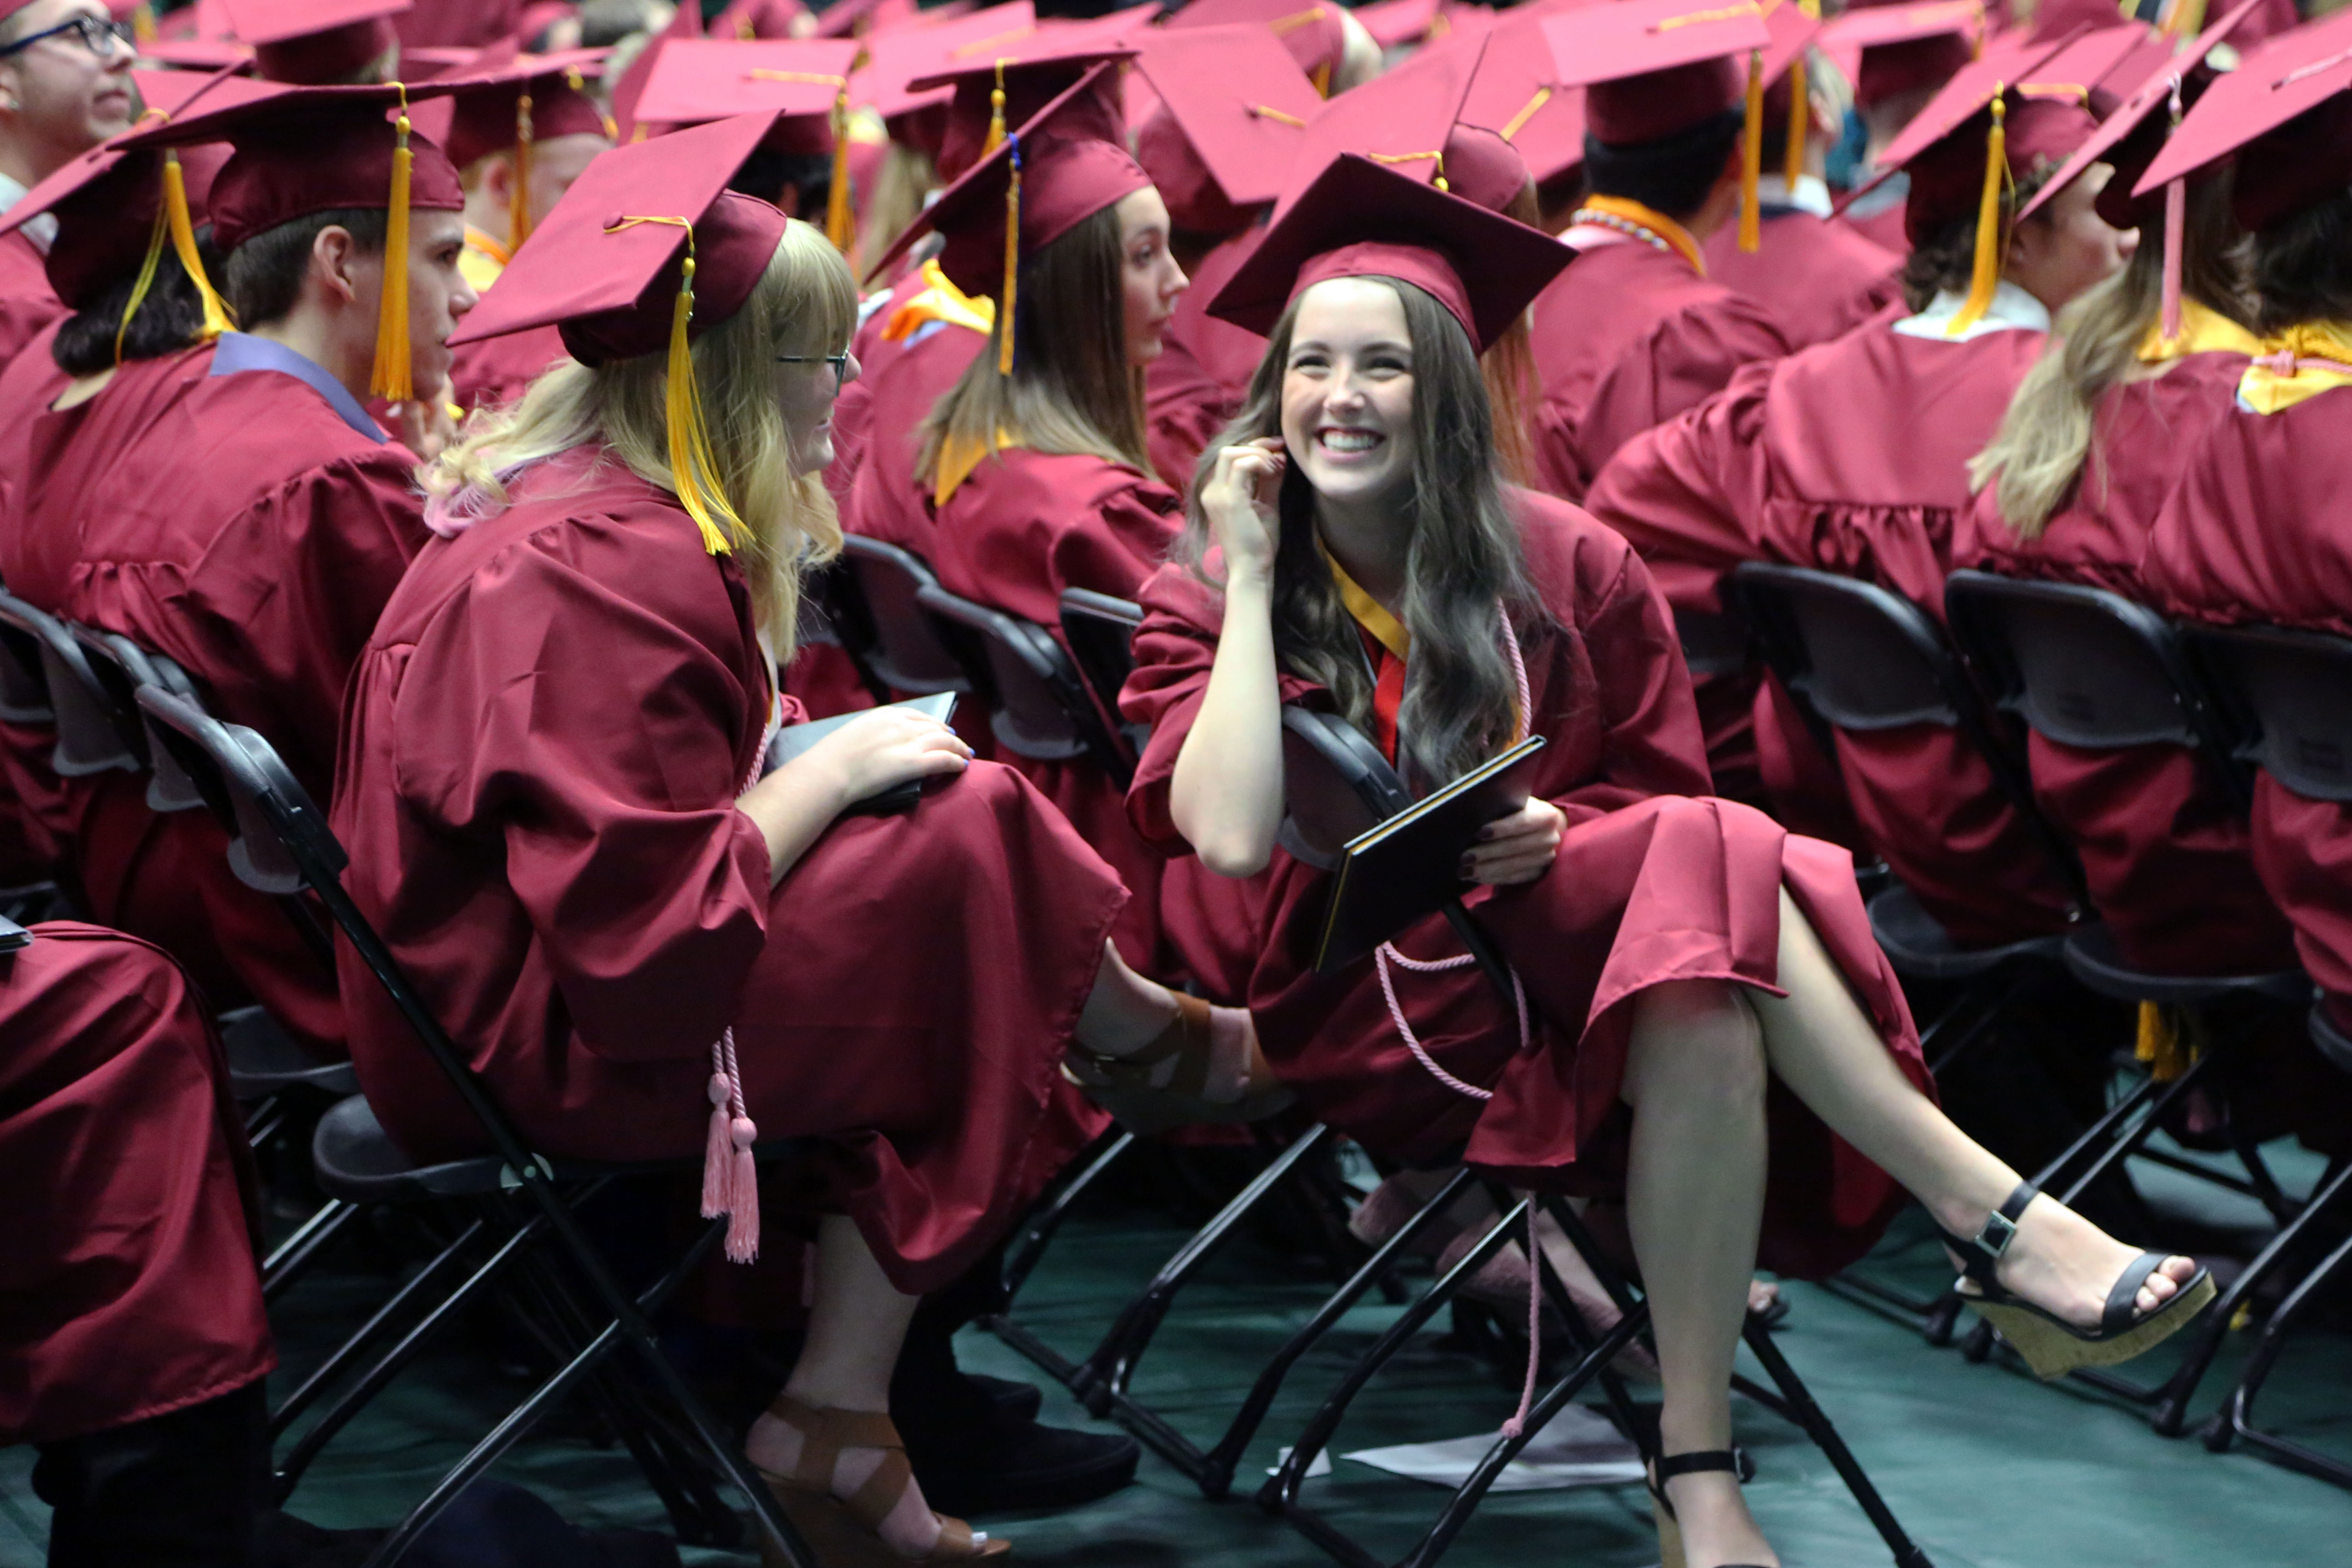 Rocky grads chat while waiting in their seats.